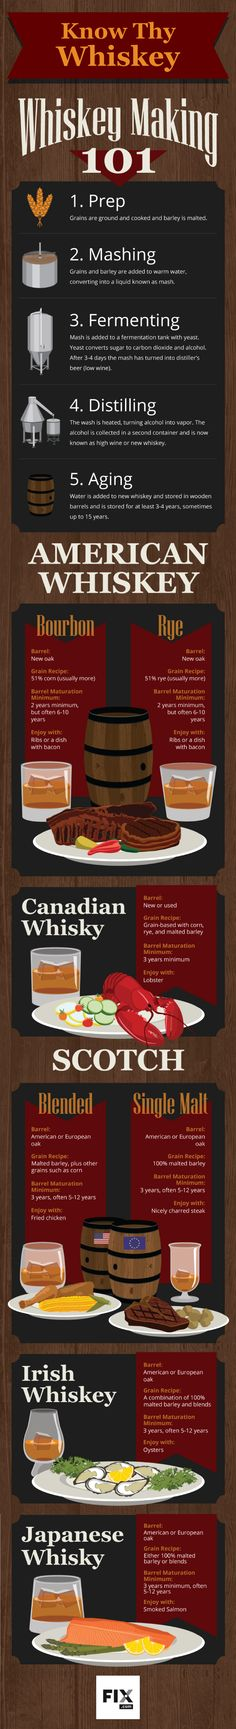 Know Thy Whiskey: Whiskey Making 101 #infographic #Whiskey   http://www.amazon.co.uk/dp/B00VVJGJ2W